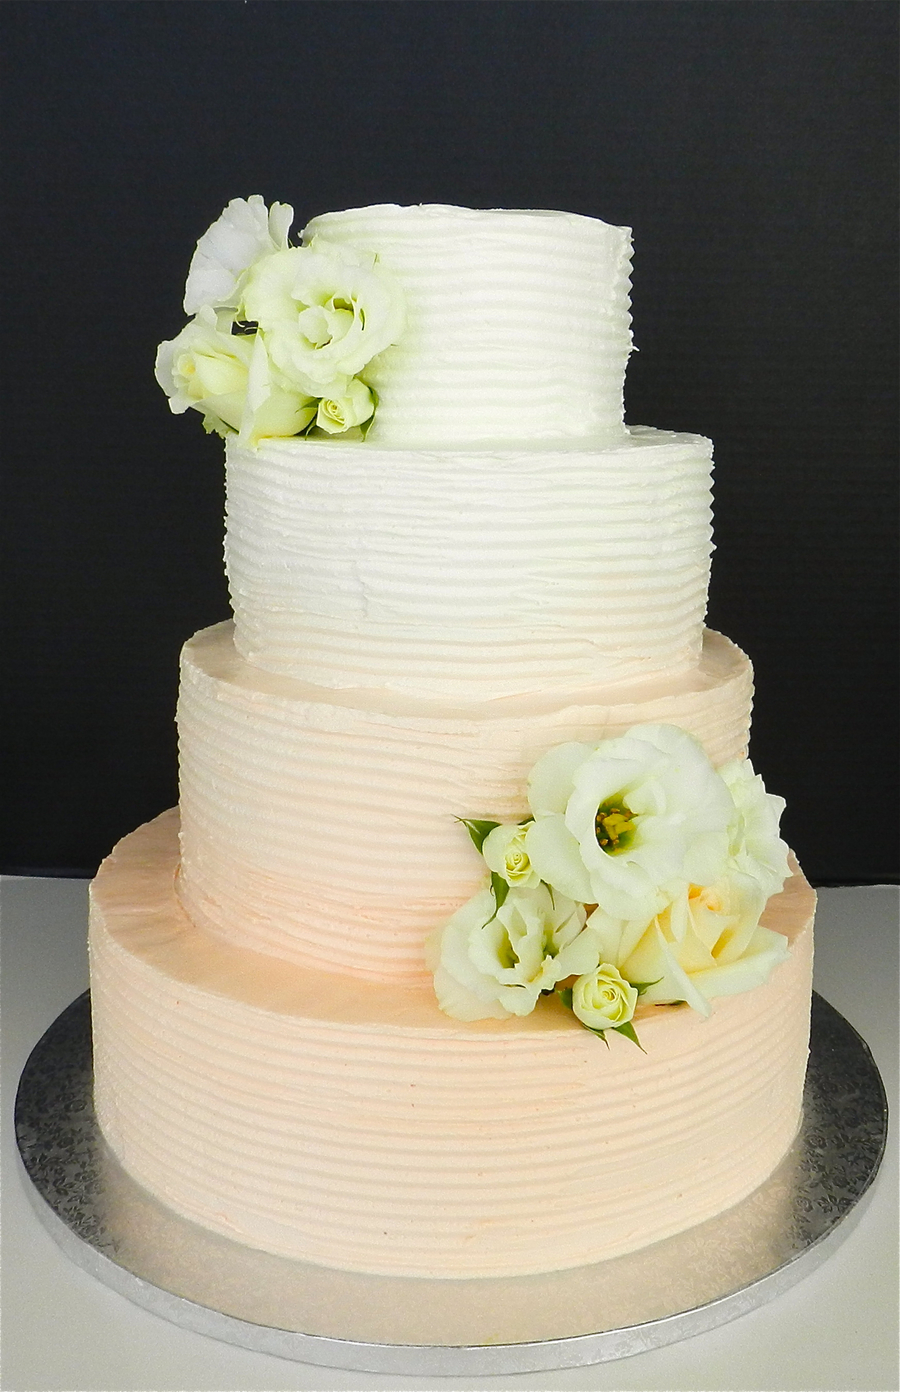 Buttercream Ombre Wedding Cake on Cake Central